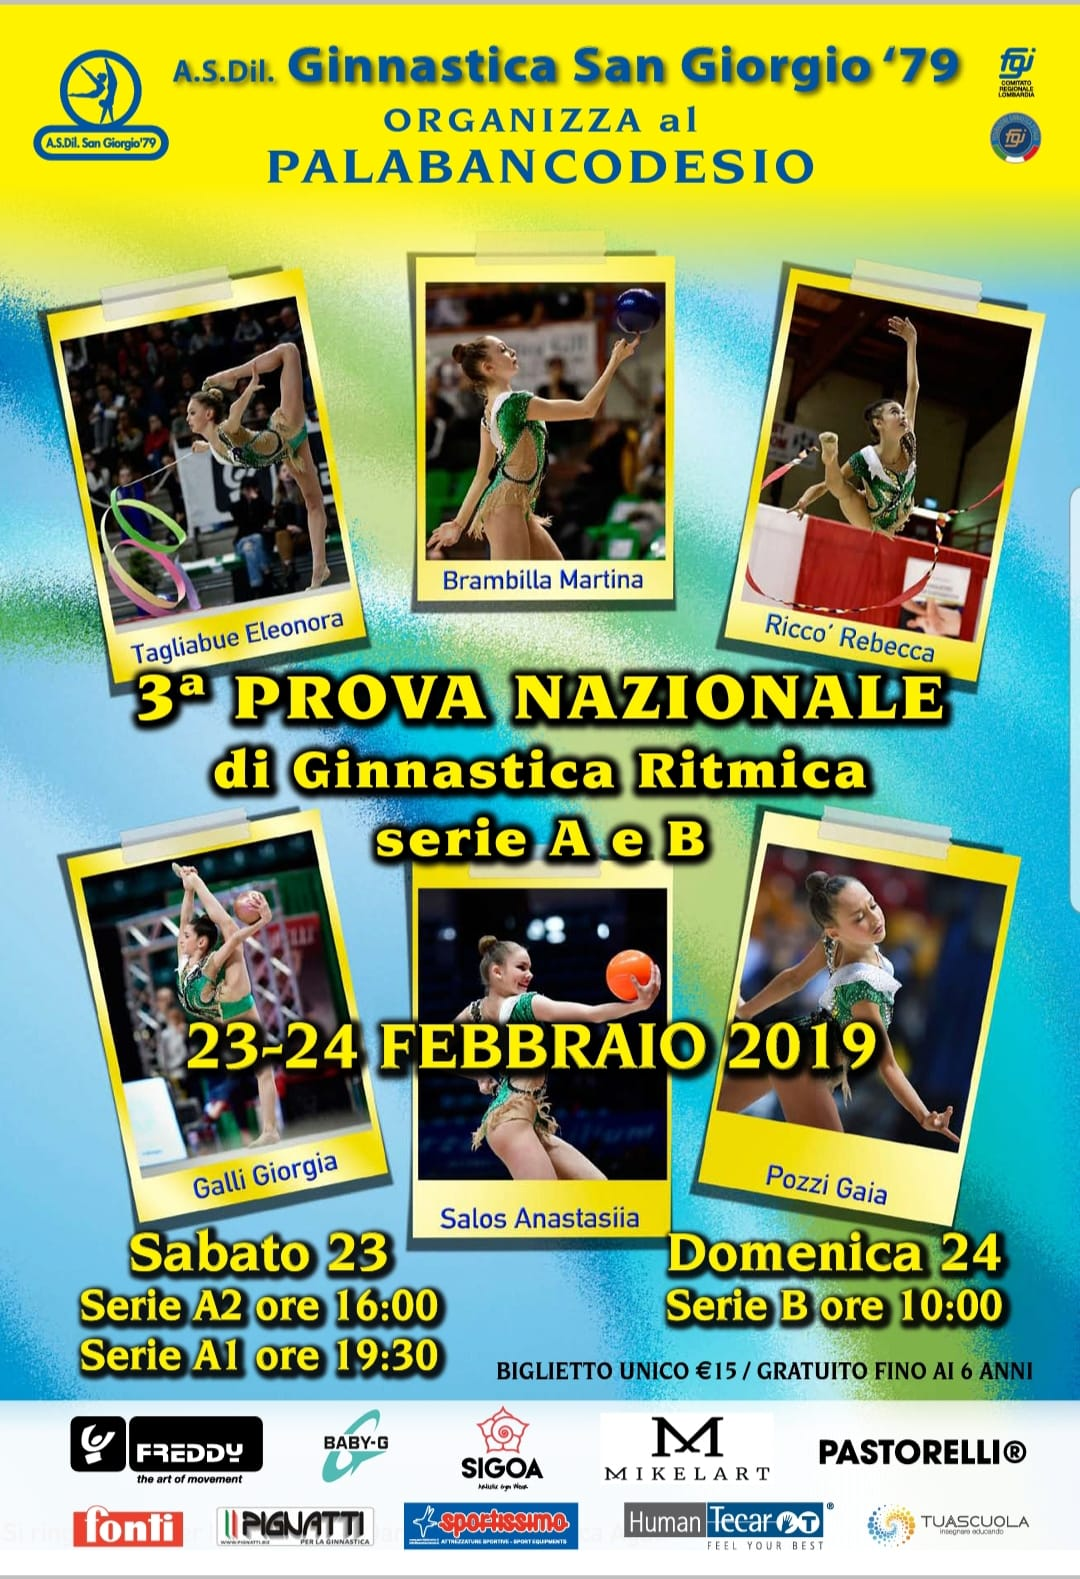 Fgi Lombardia Calendario Gare 2020.Livello Gold Beatricevivaldi It